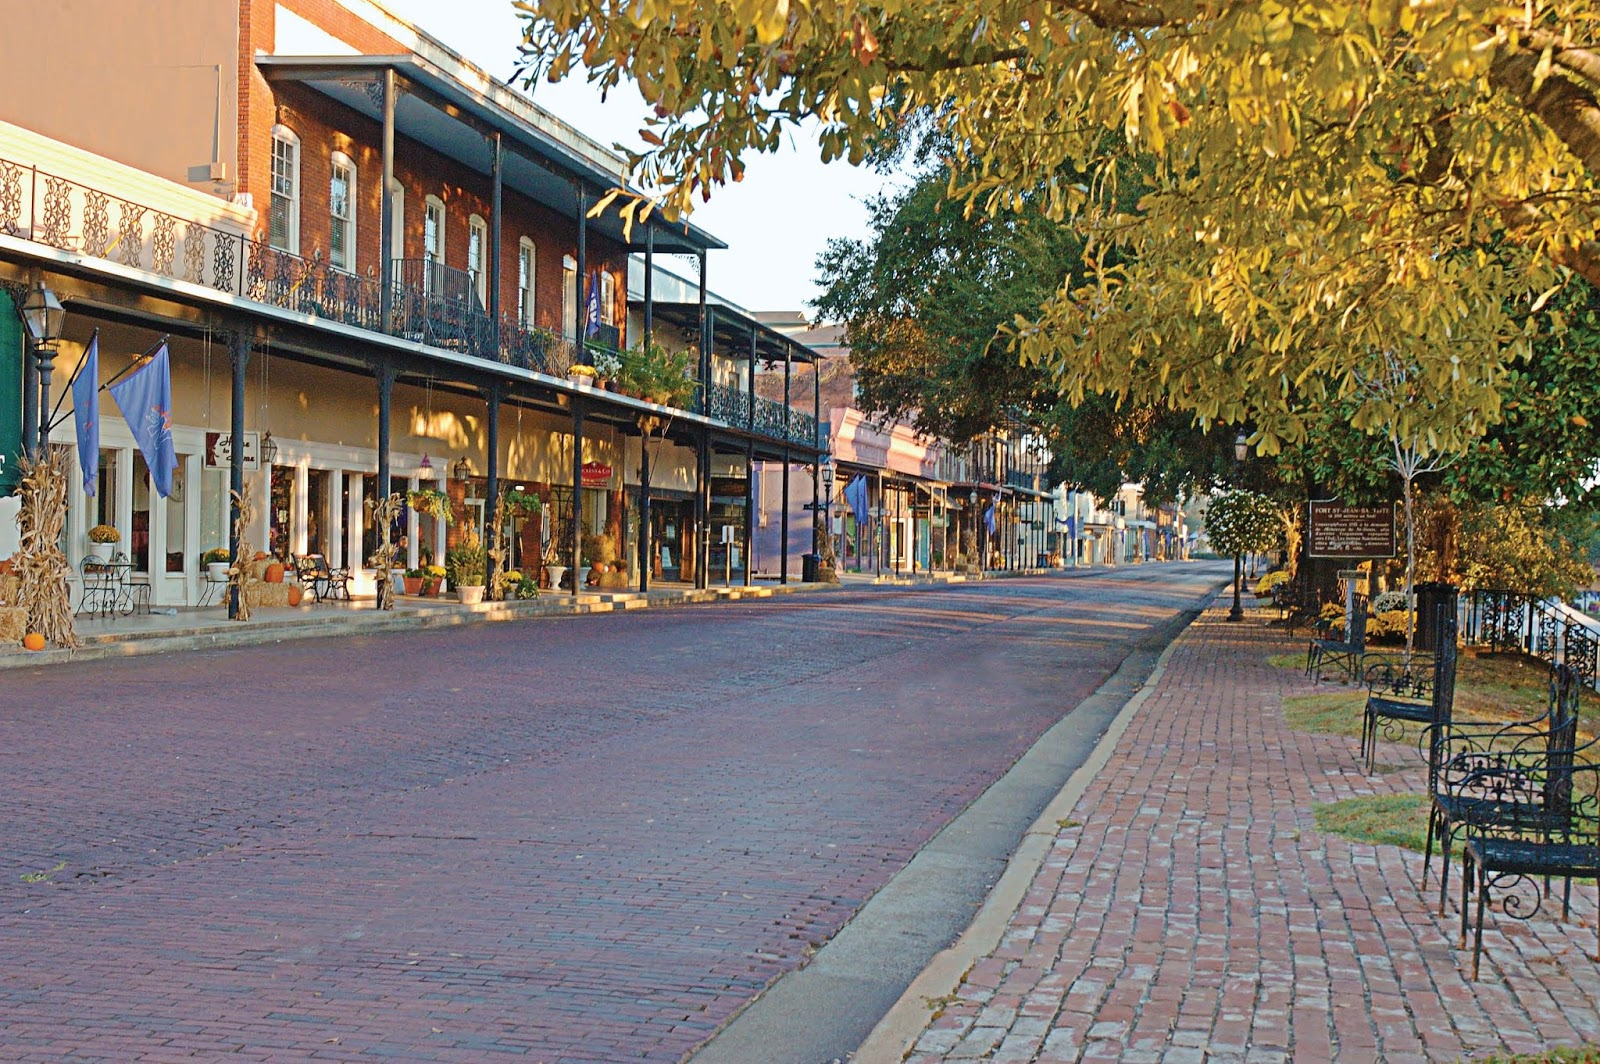 Small Bed Paix Running Natchitoches Louisiana